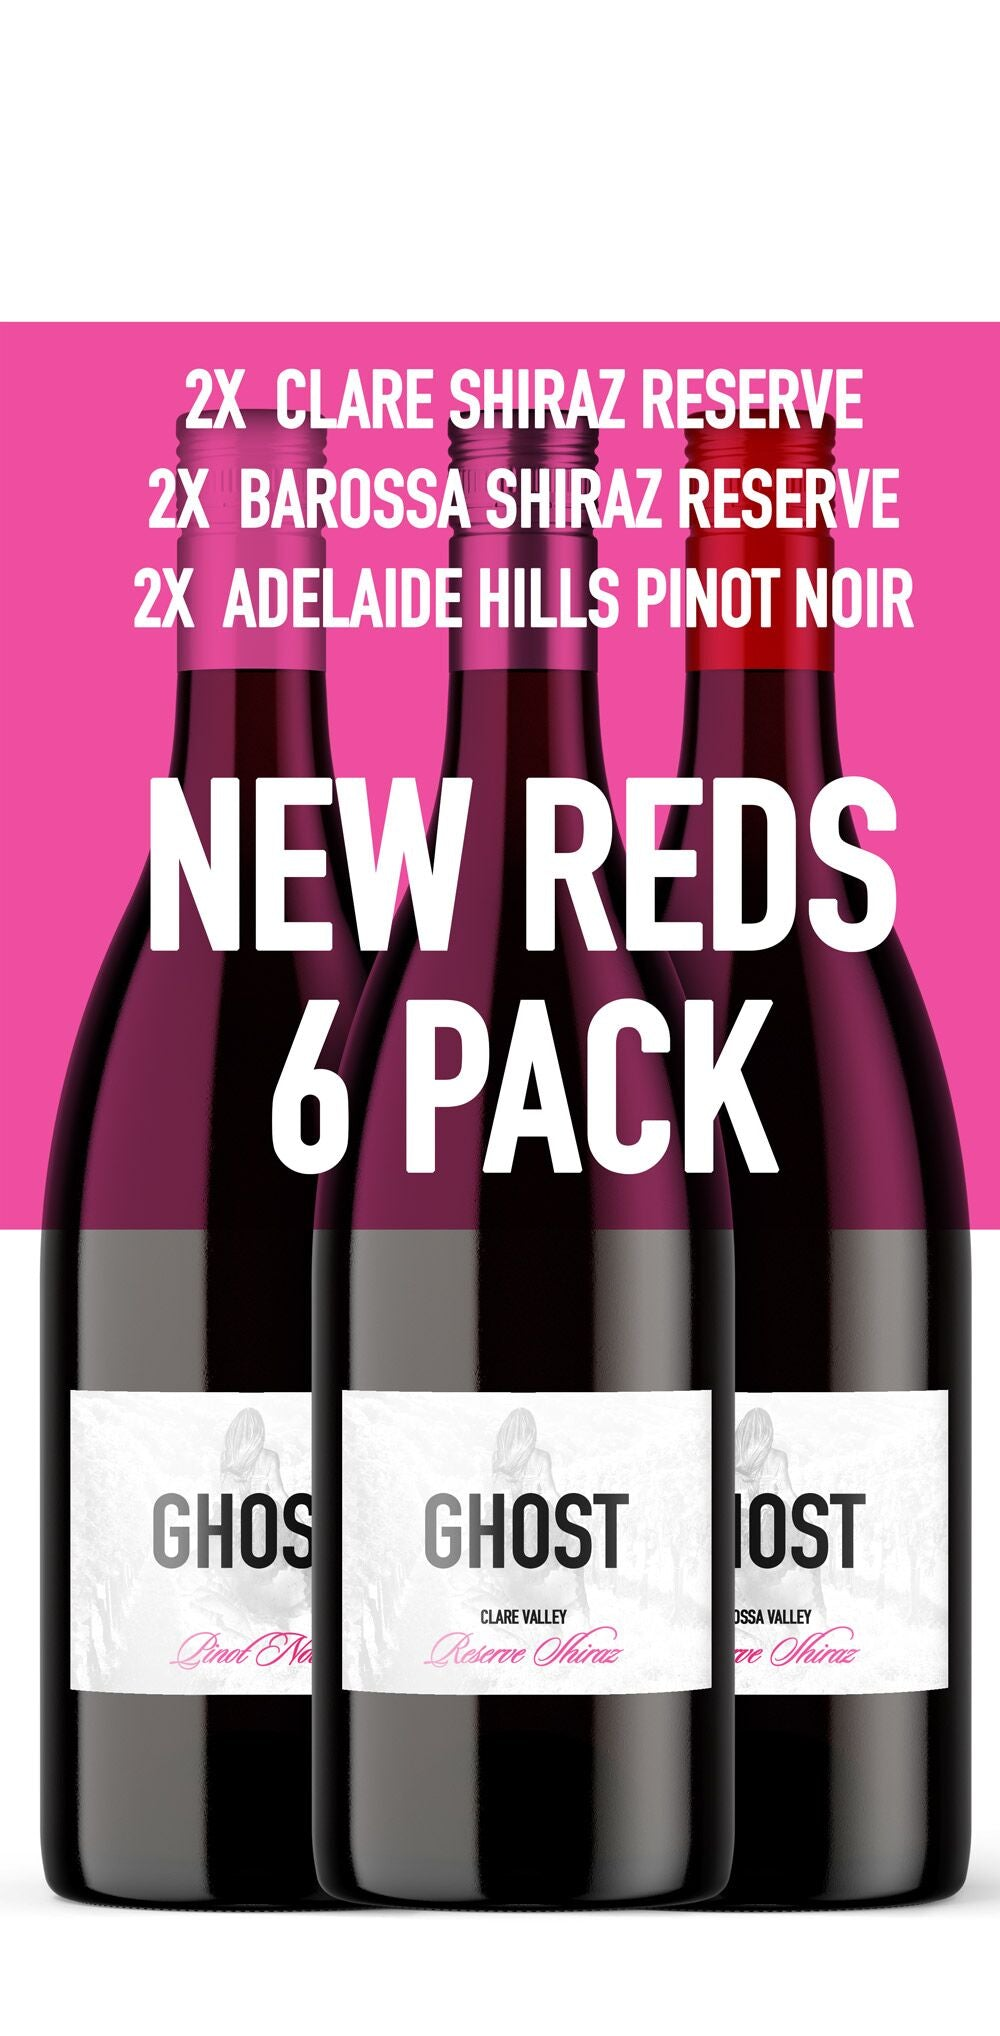 Ghost Reds 6 pack